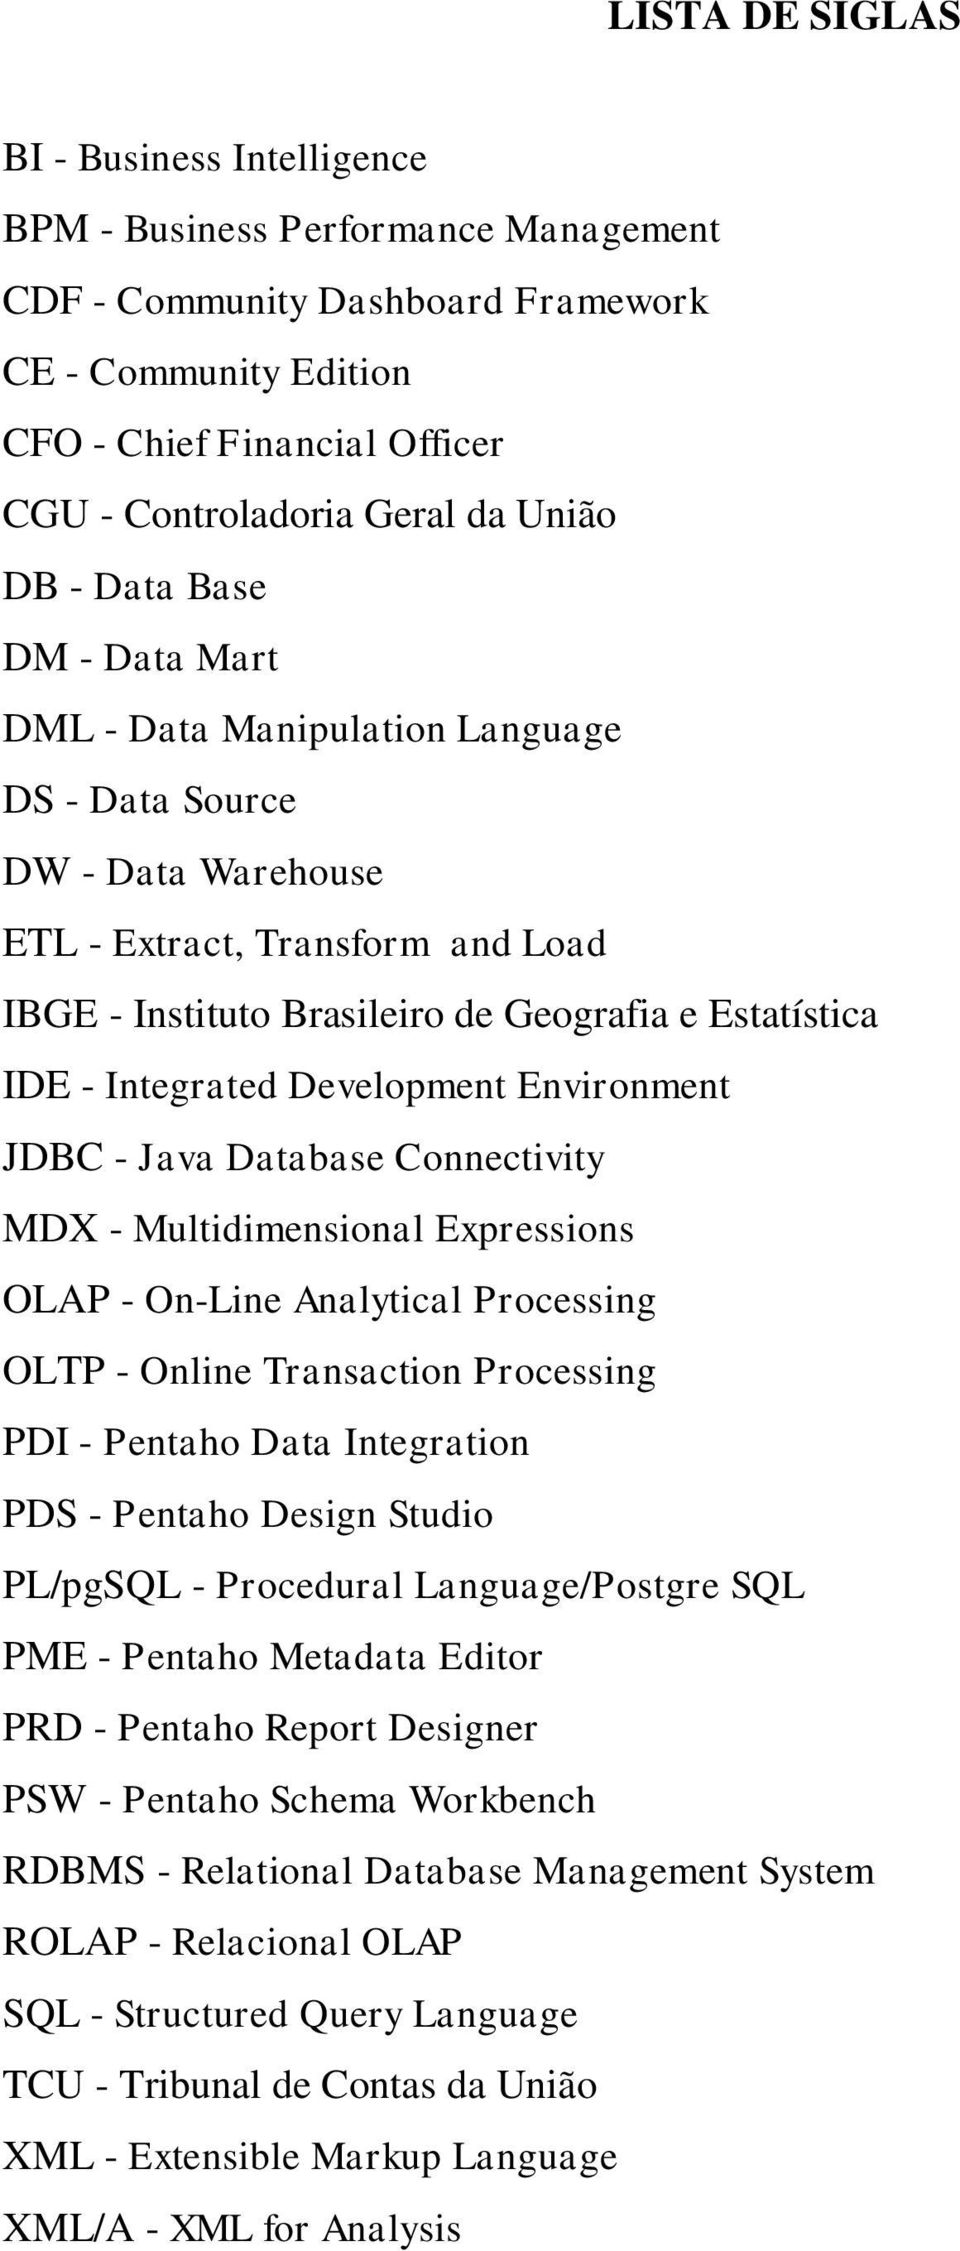 - Integrated Development Environment JDBC - Java Database Connectivity MDX - Multidimensional Expressions OLAP - On-Line Analytical Processing OLTP - Online Transaction Processing PDI - Pentaho Data